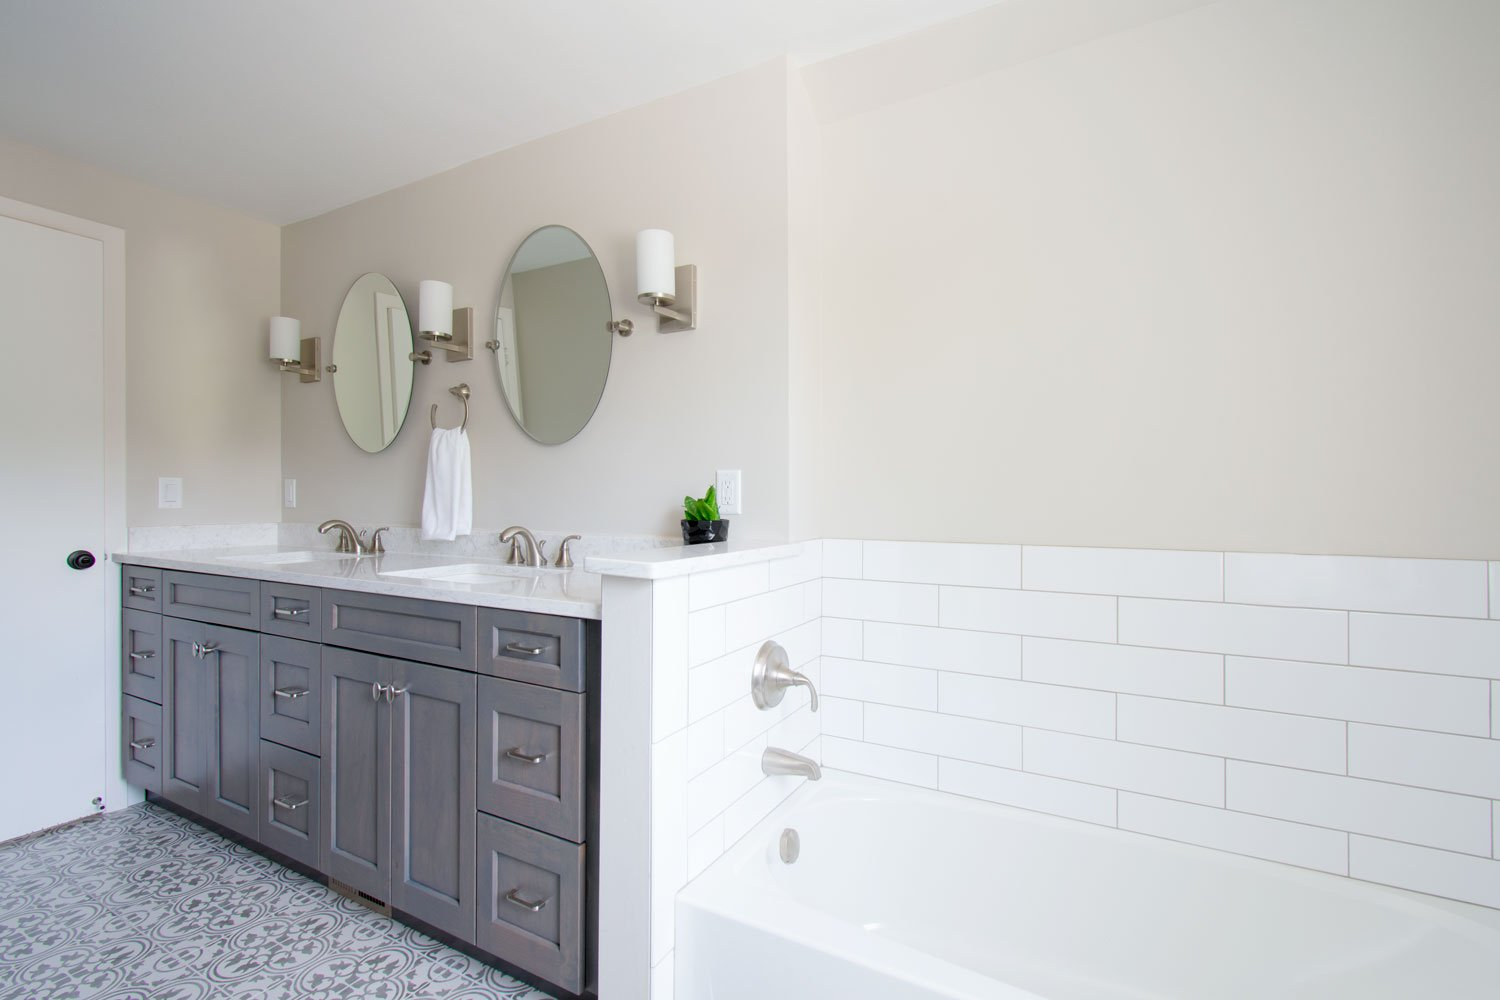 Subway tile wall bathtub and wood cabinetry